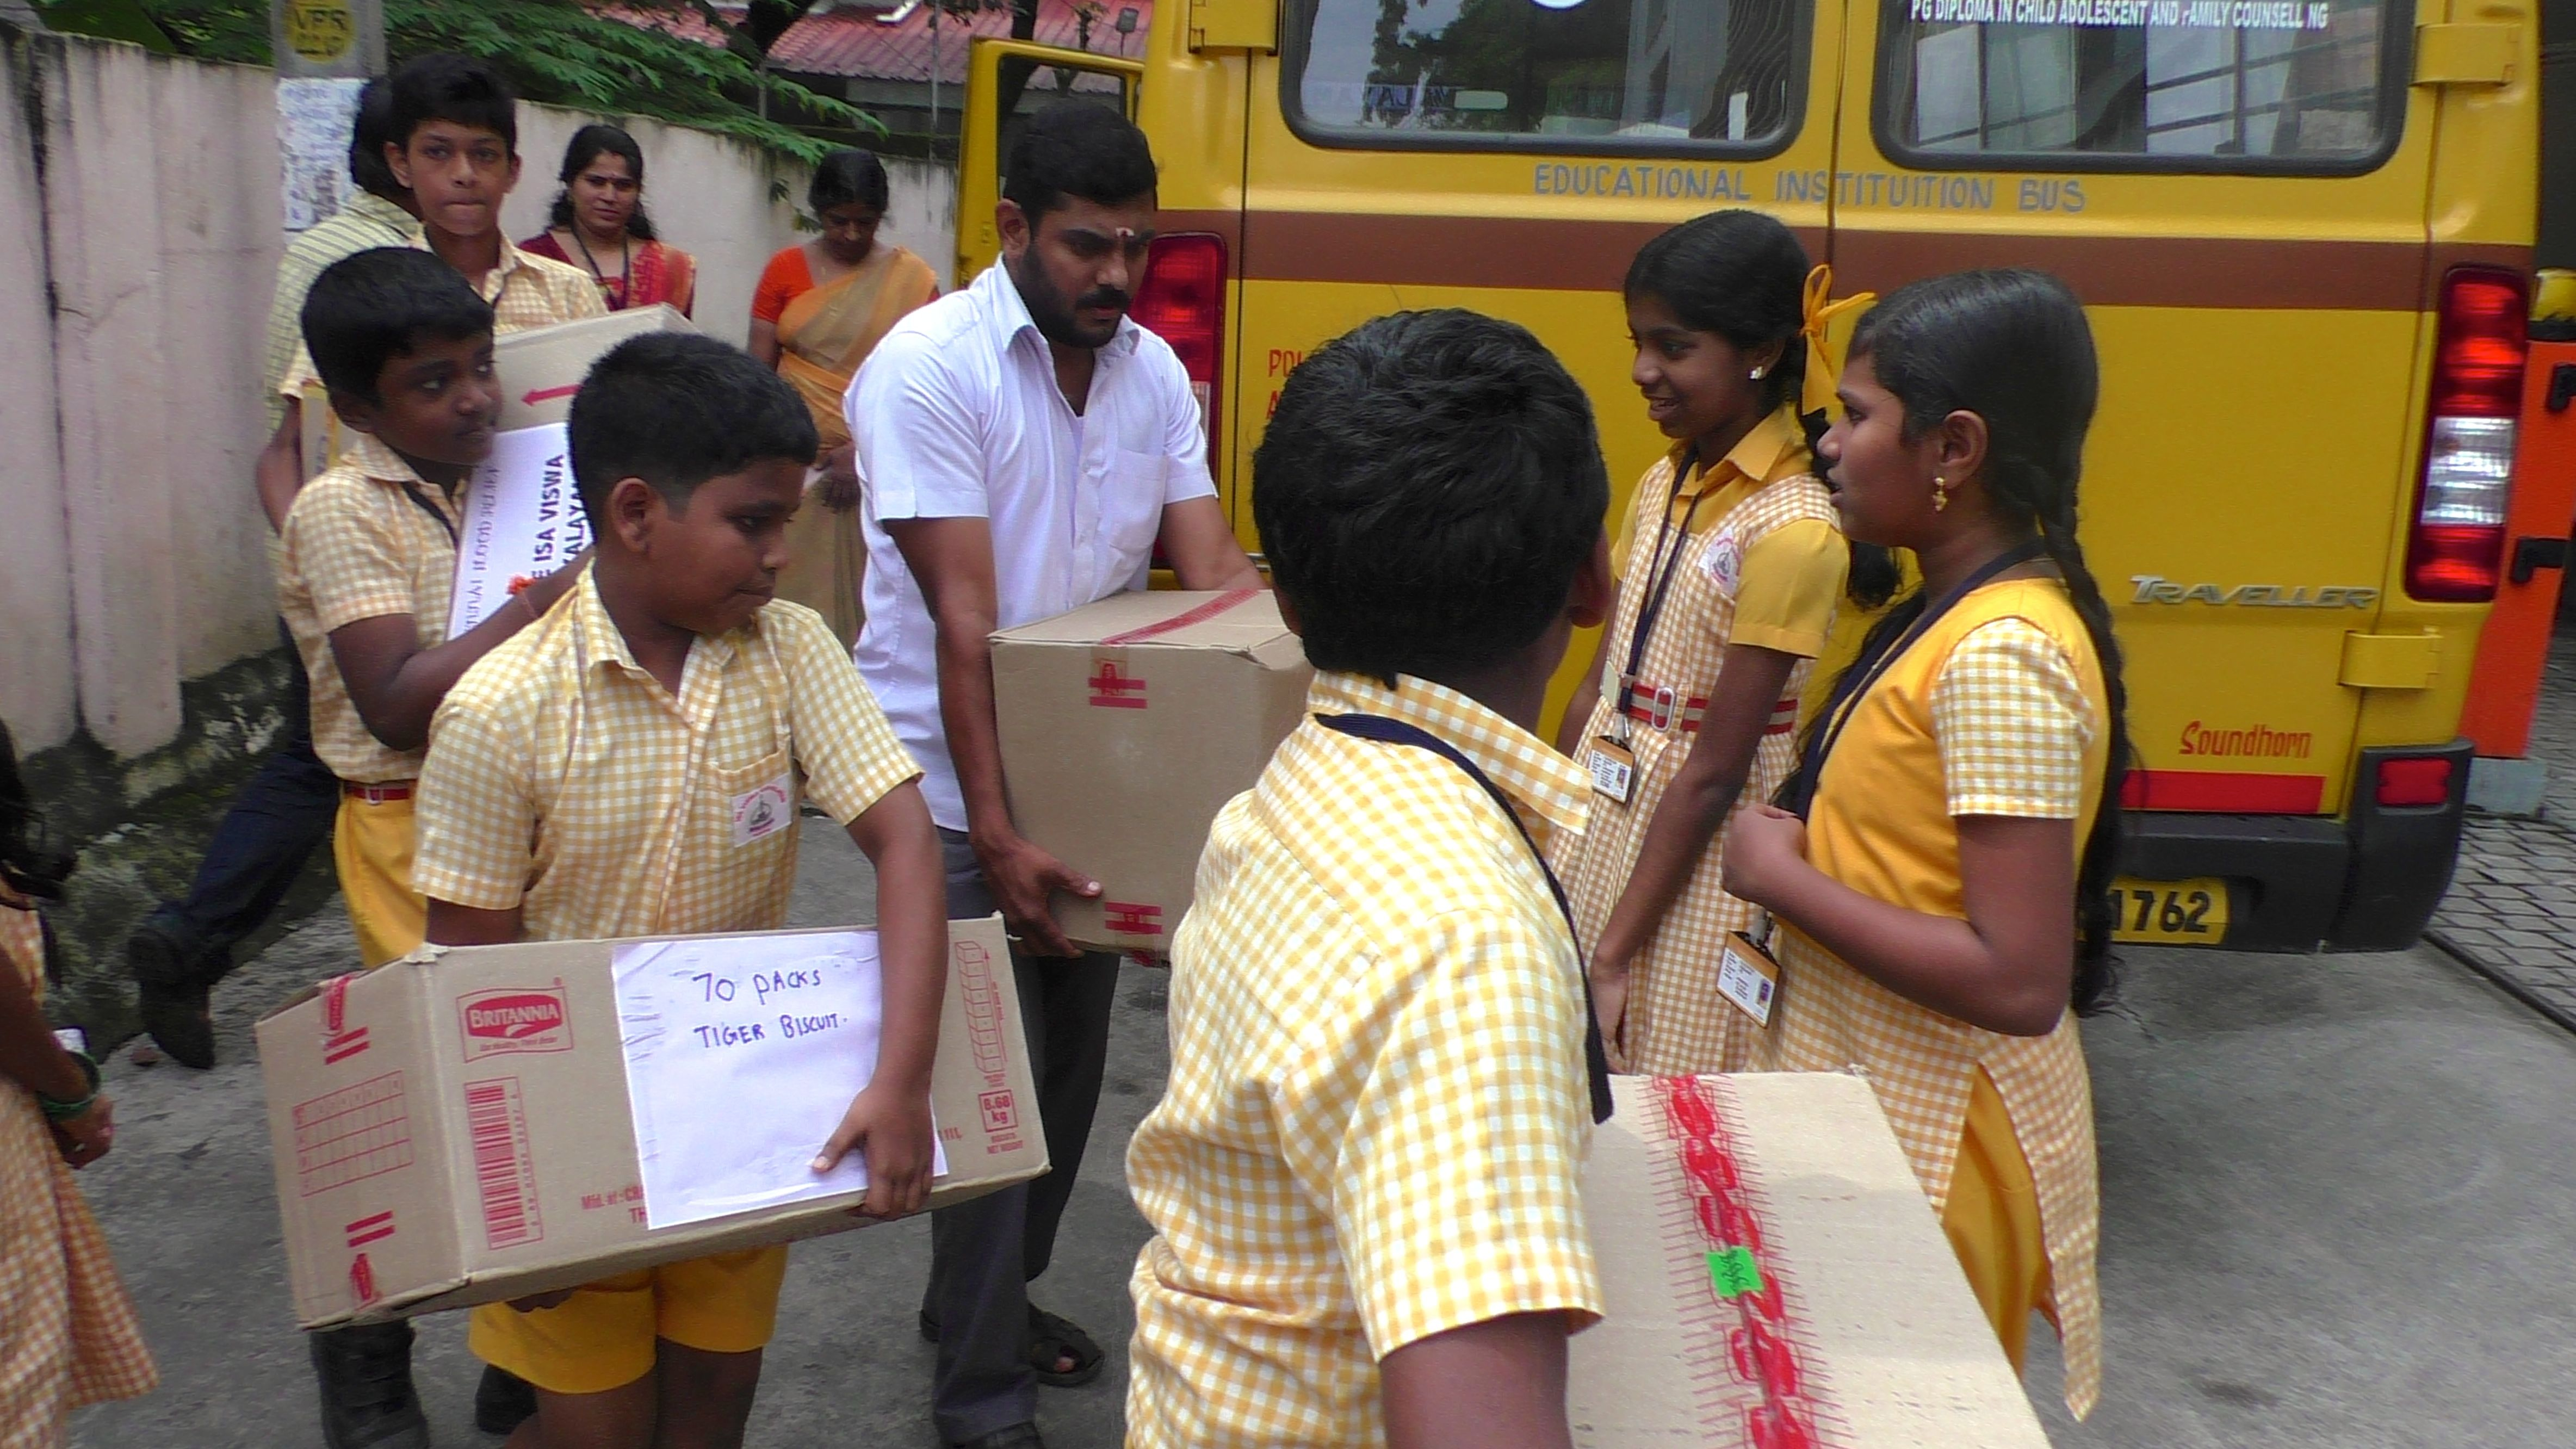 Students of Isa Viswa Vidyalayam unload materials for Chennai relief